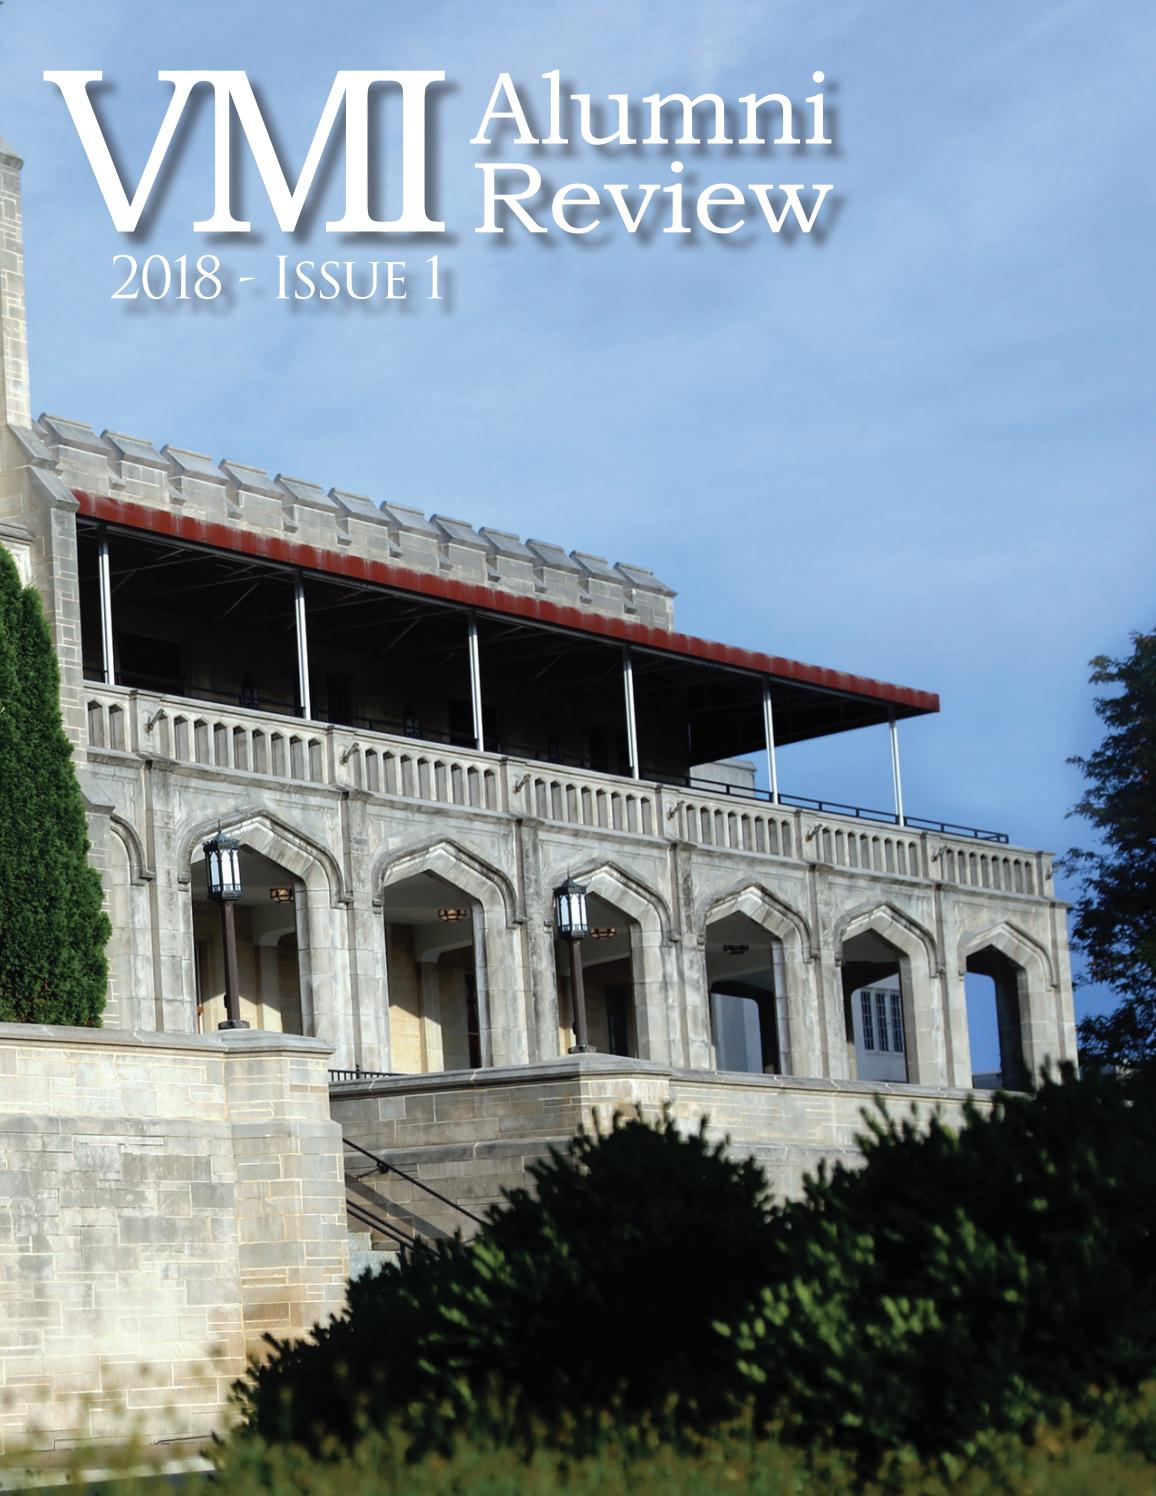 2f501ebc4399 2018-Issue 1 Alumni Review by VMI Alumni Agencies - issuu